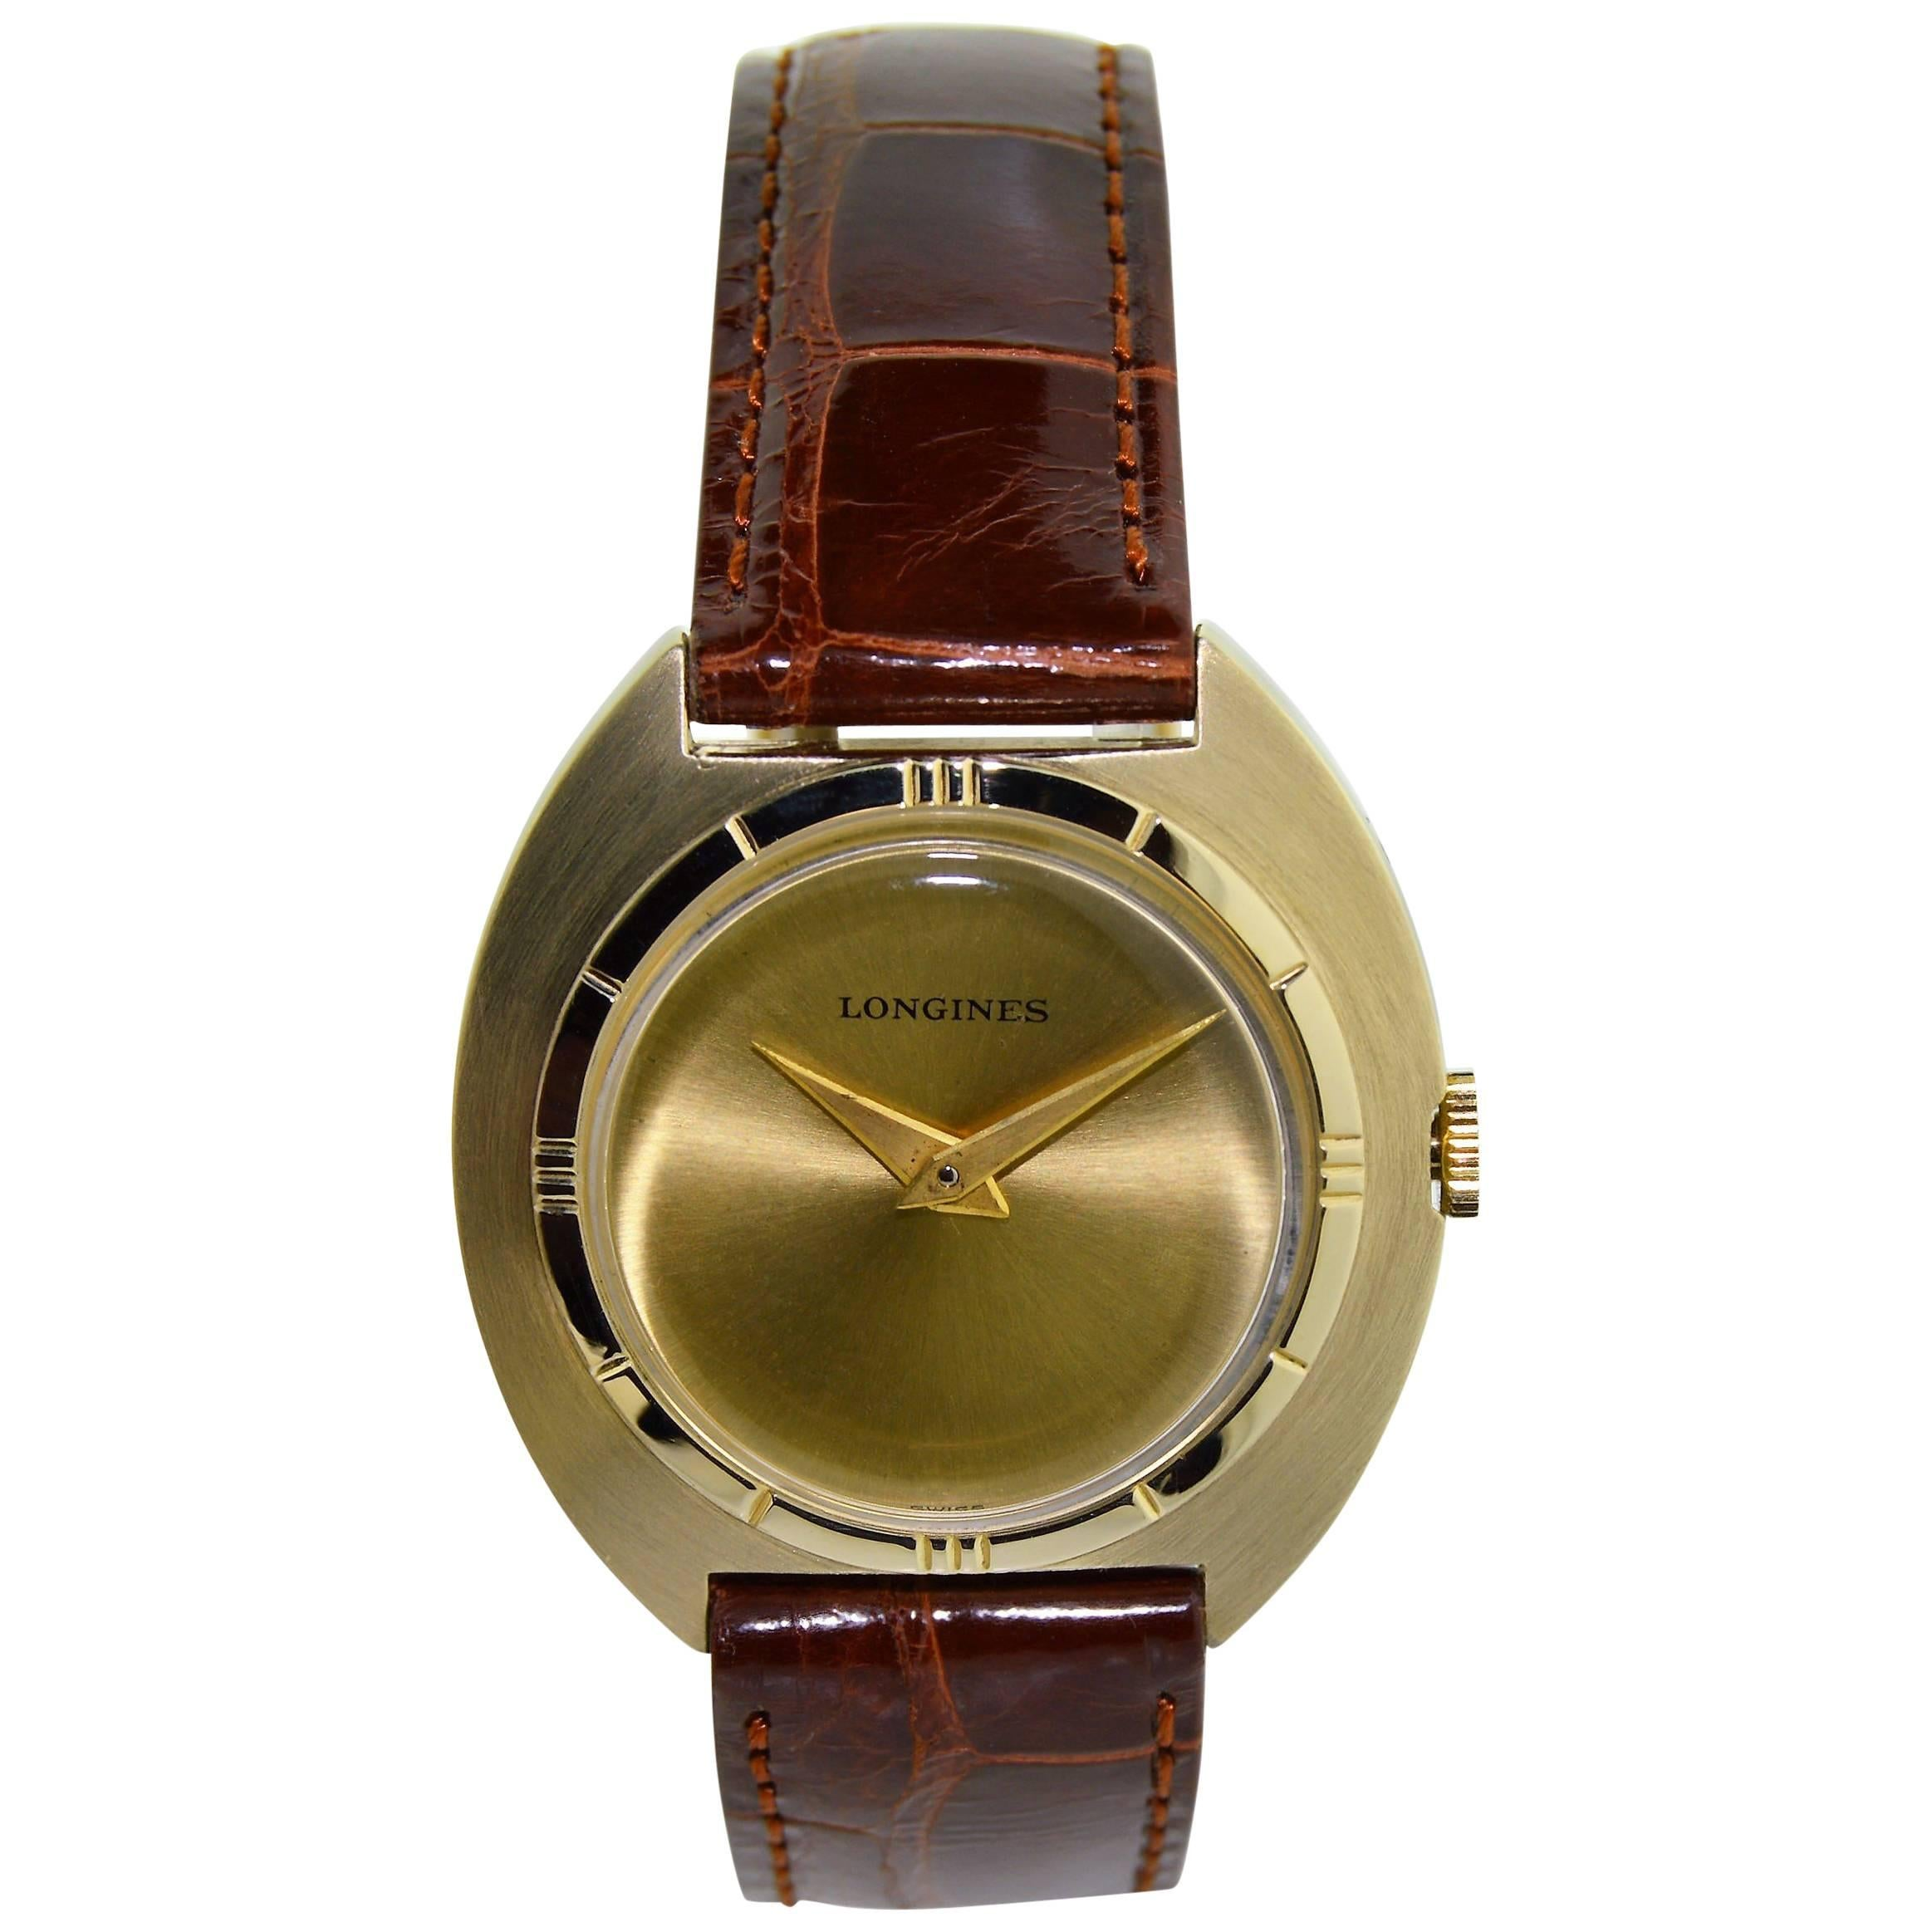 Longines Yellow Gold Filled Moderne Style Tonneau Shaped Manual Watch